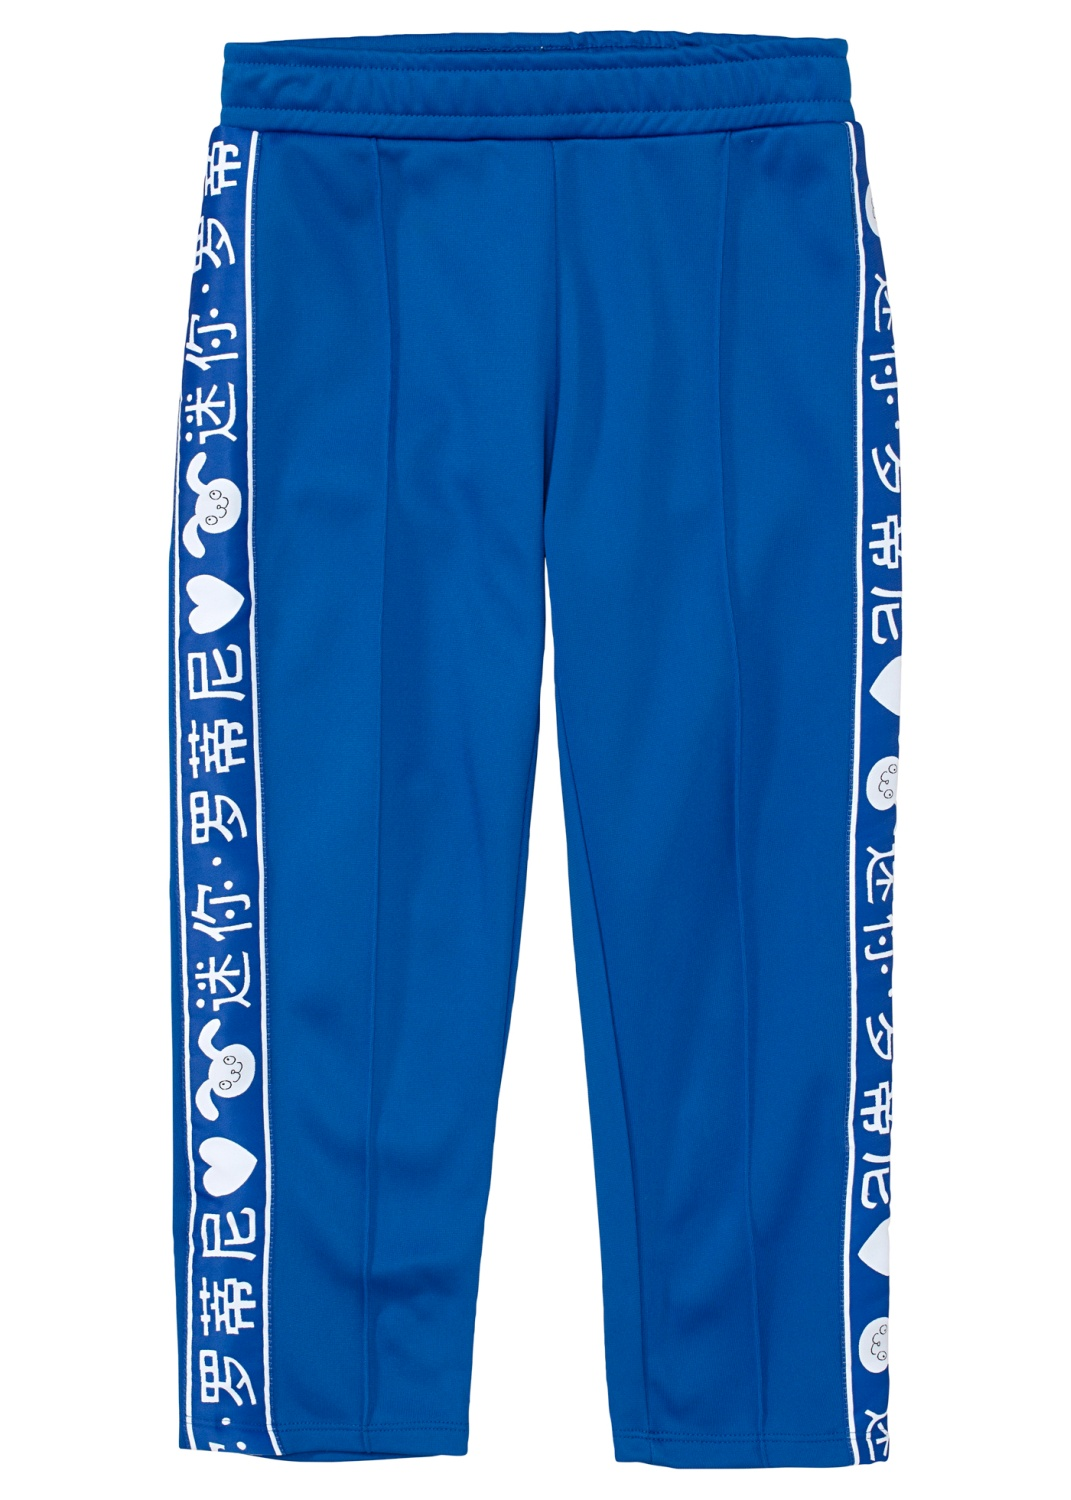 Rabbit wct trousers -X- image number 0